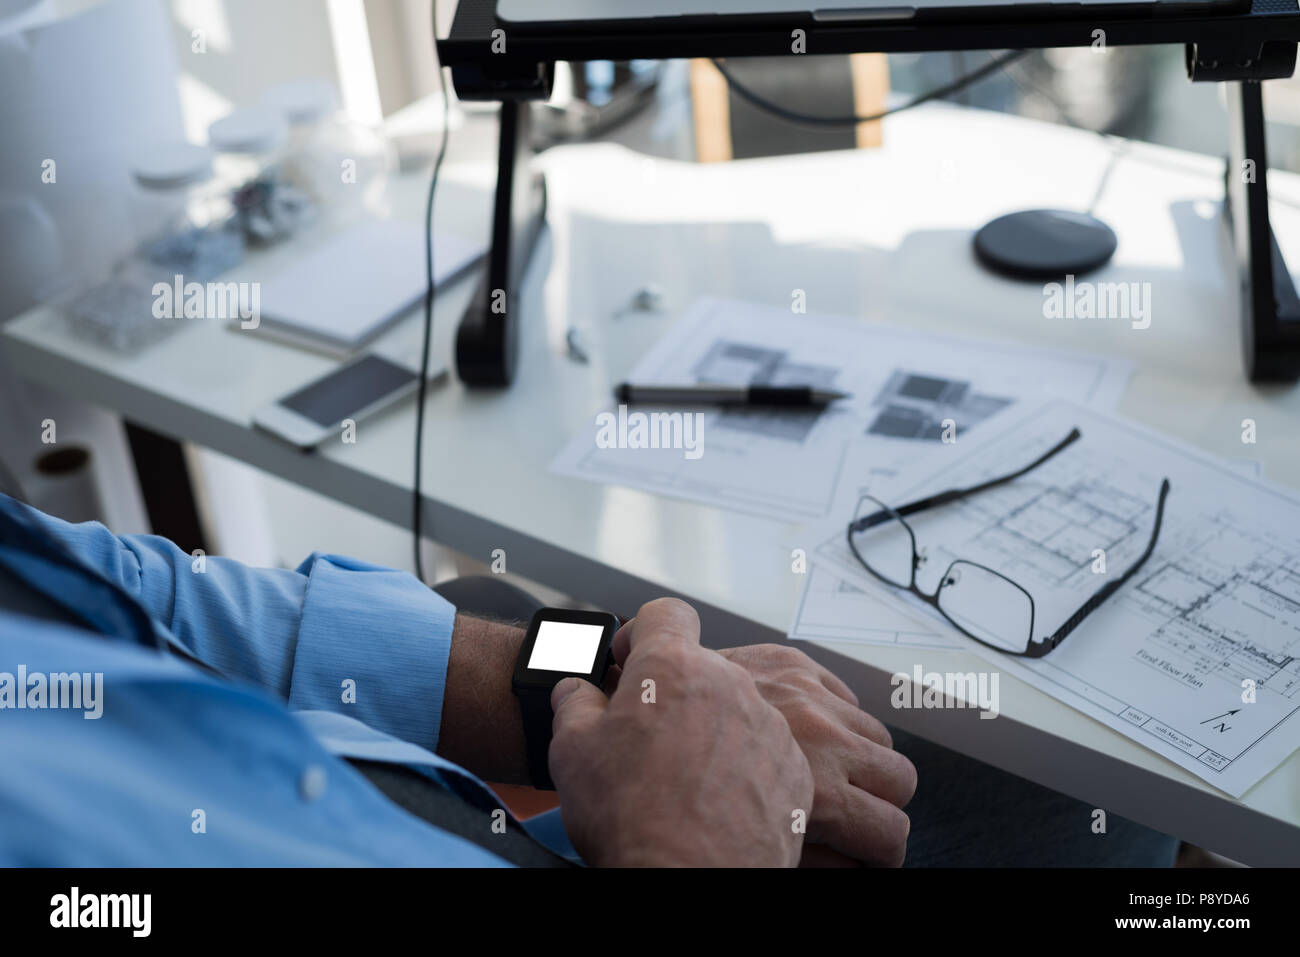 Man using smartwatch at home - Stock Image